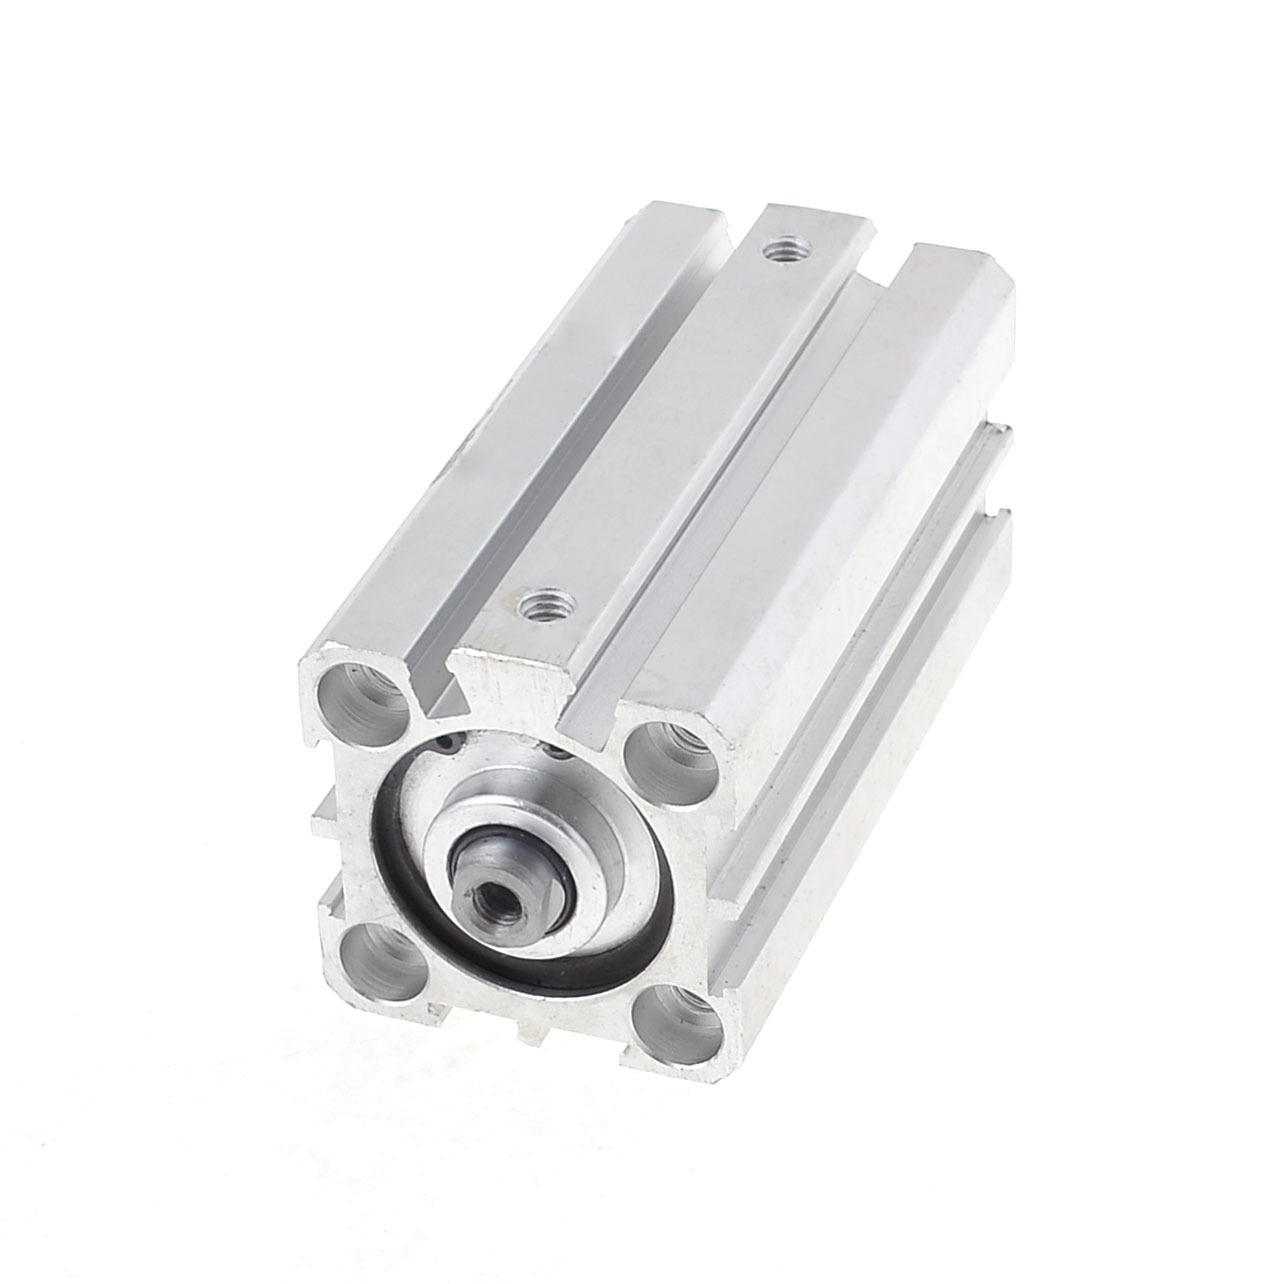 SDA 25x60 25mm Bore 40mm Stroke Dual Action Air Cylinder 81mm Long